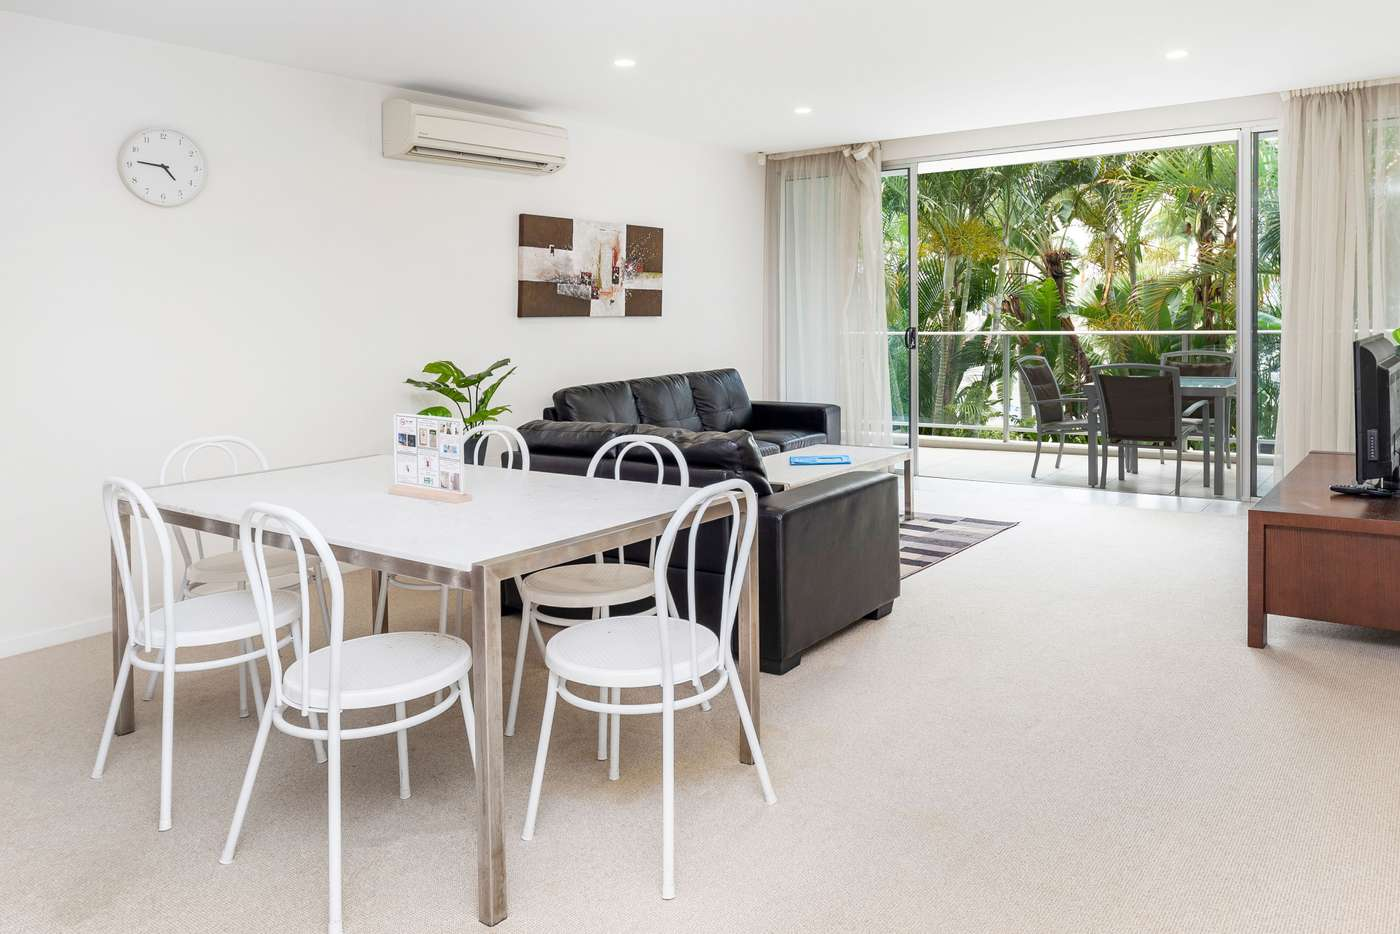 Sixth view of Homely apartment listing, 1217/2 Activa Way, Hope Island QLD 4212